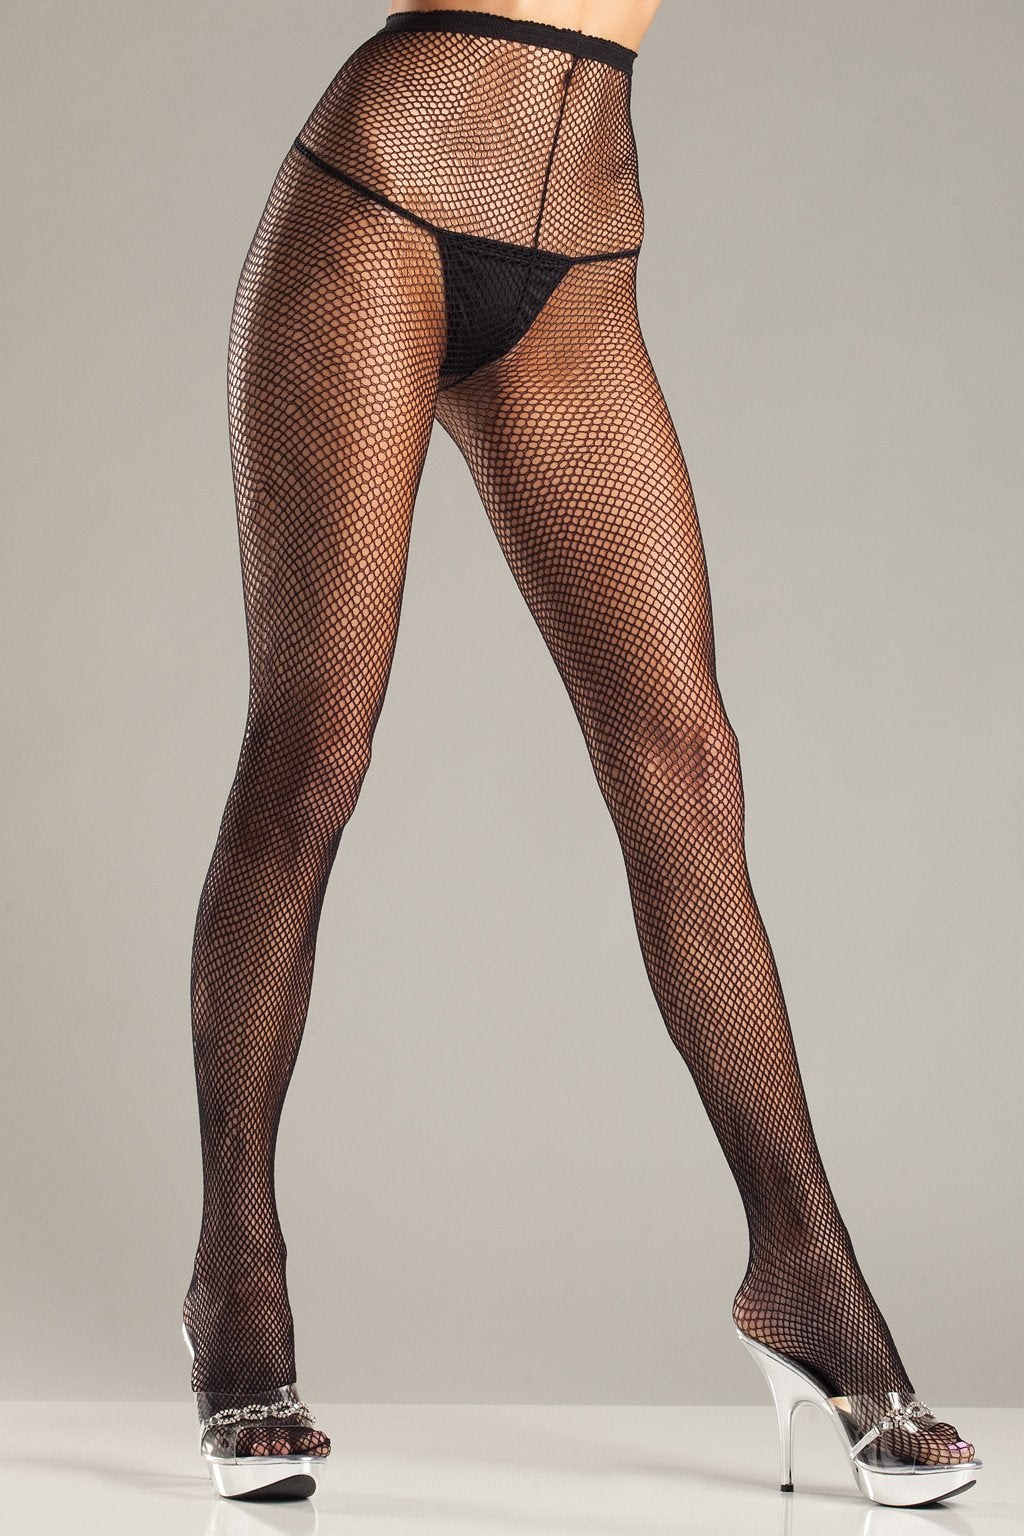 Be Wicked BW529 Fishnet Pantyhose